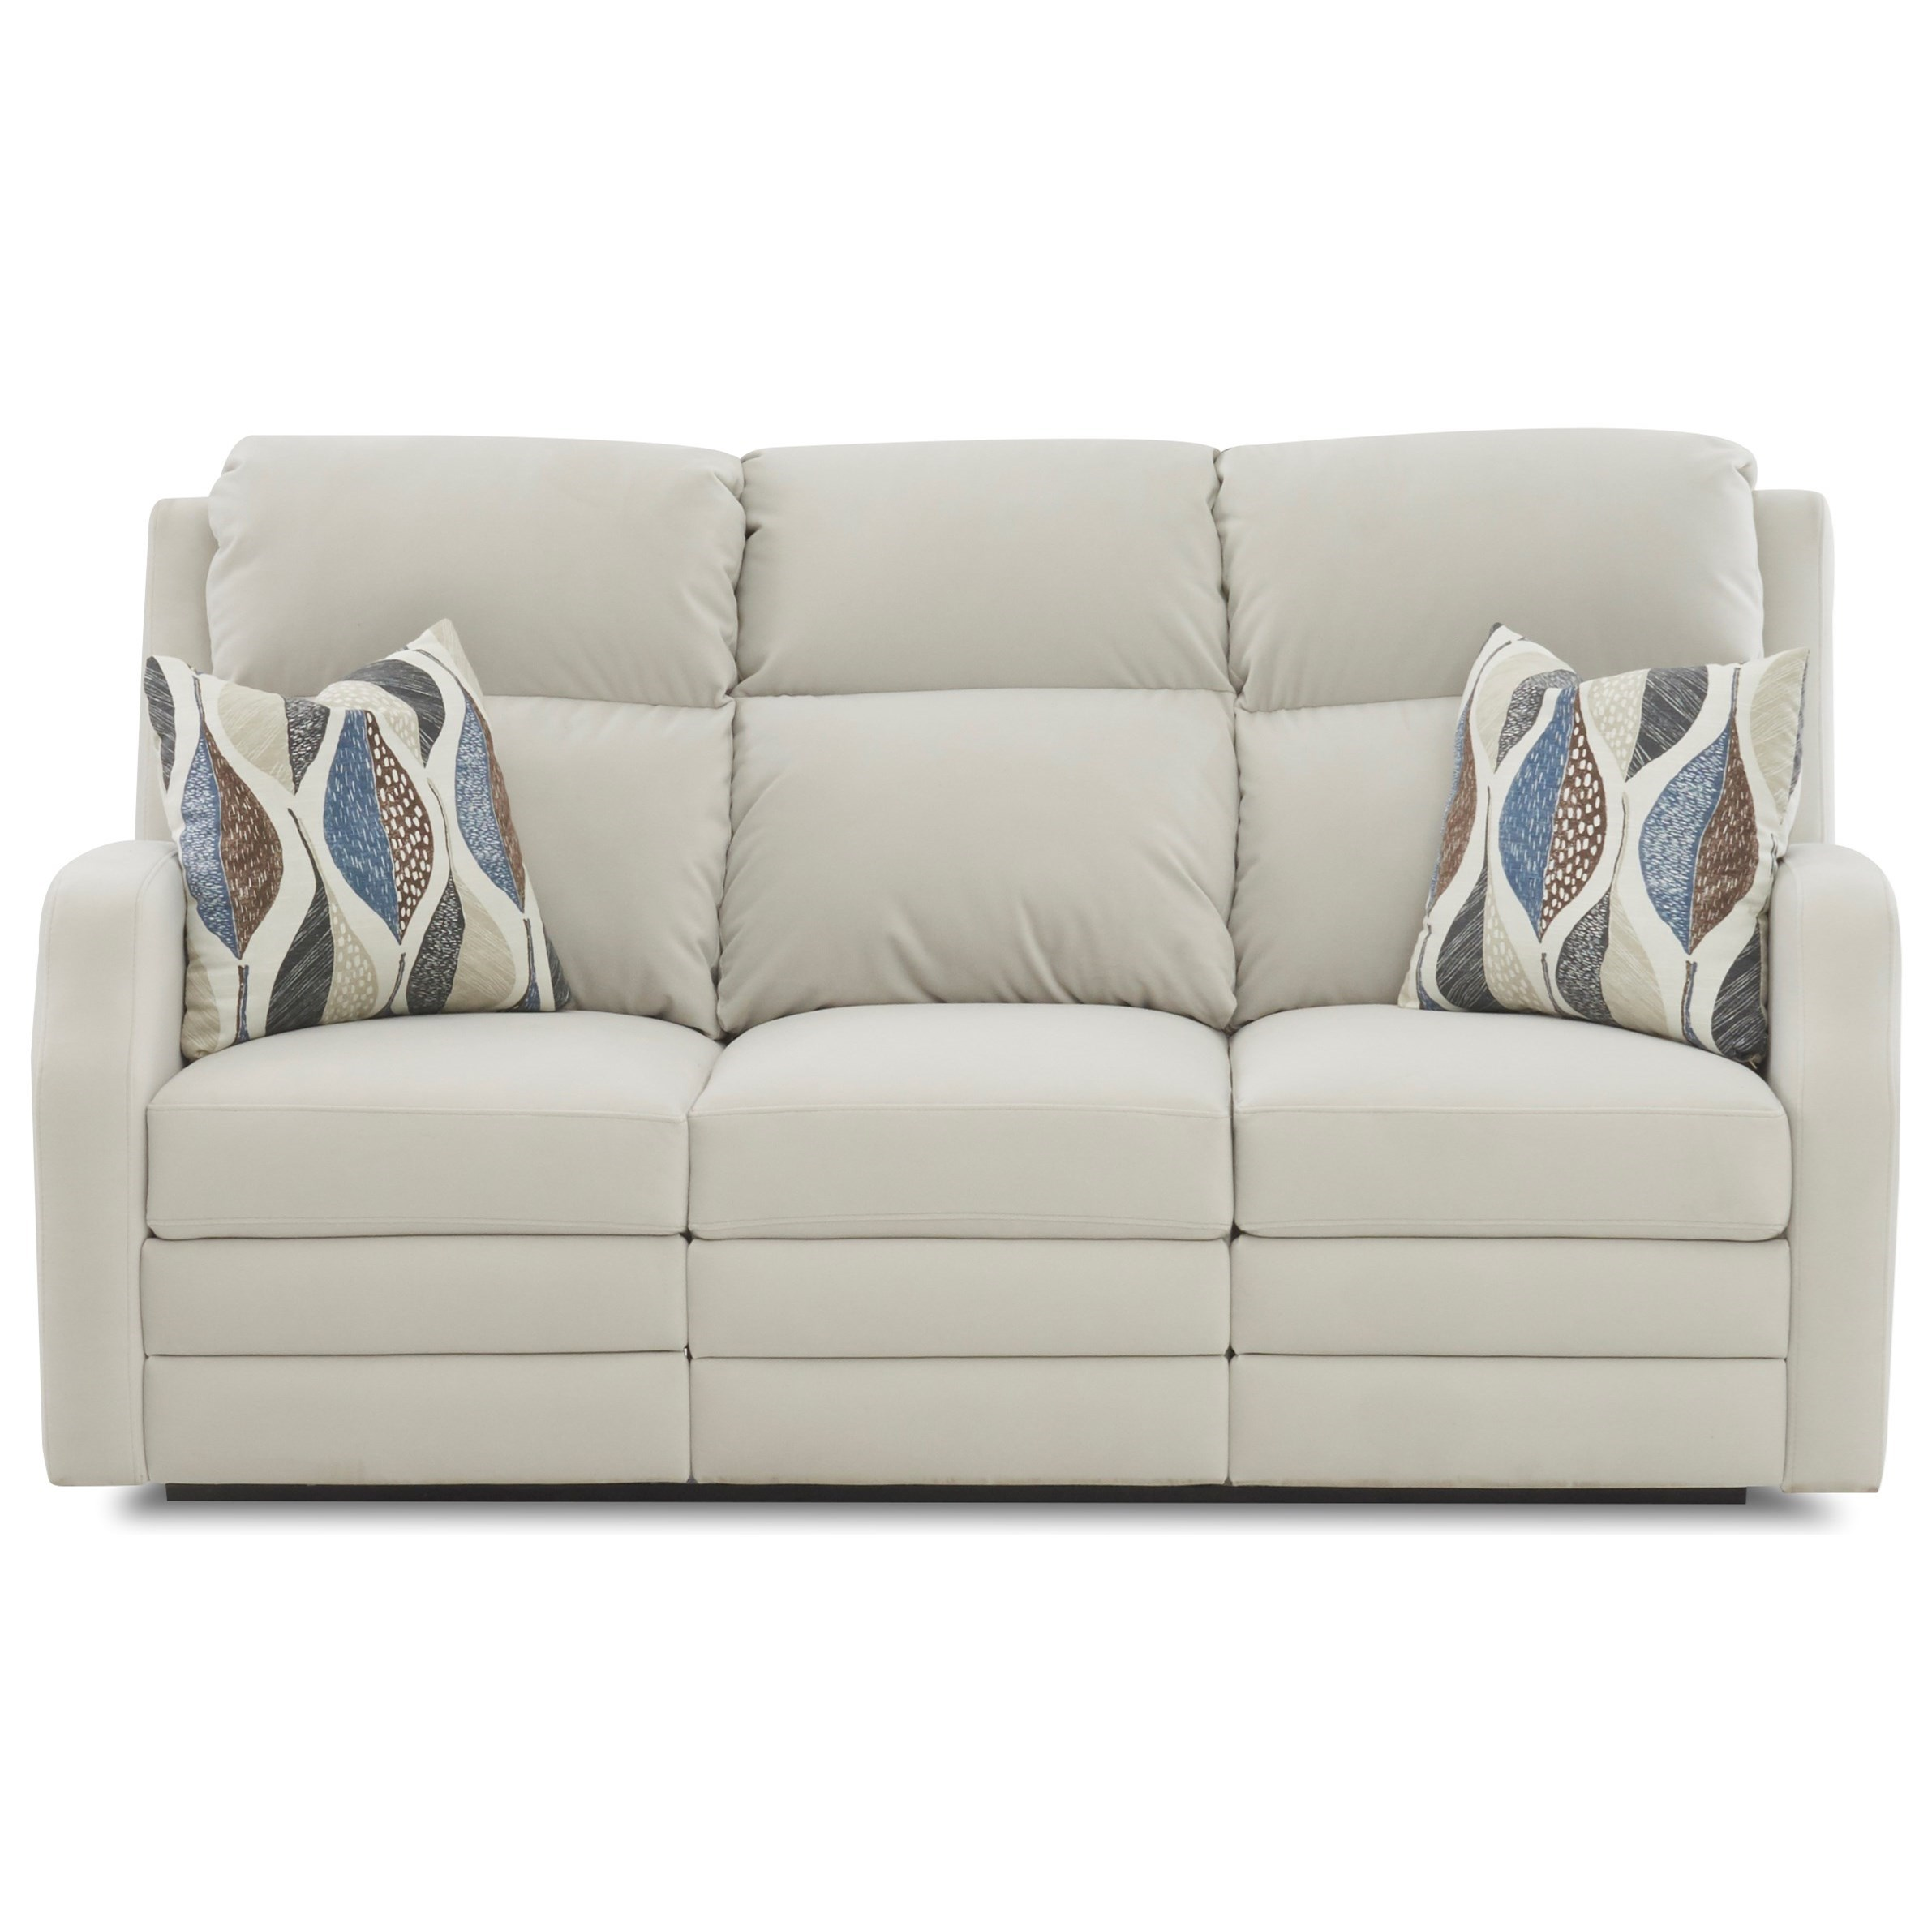 Kamiah Power Reclining Sofa w/ Pillows & Pwr Head by Klaussner at Northeast Factory Direct